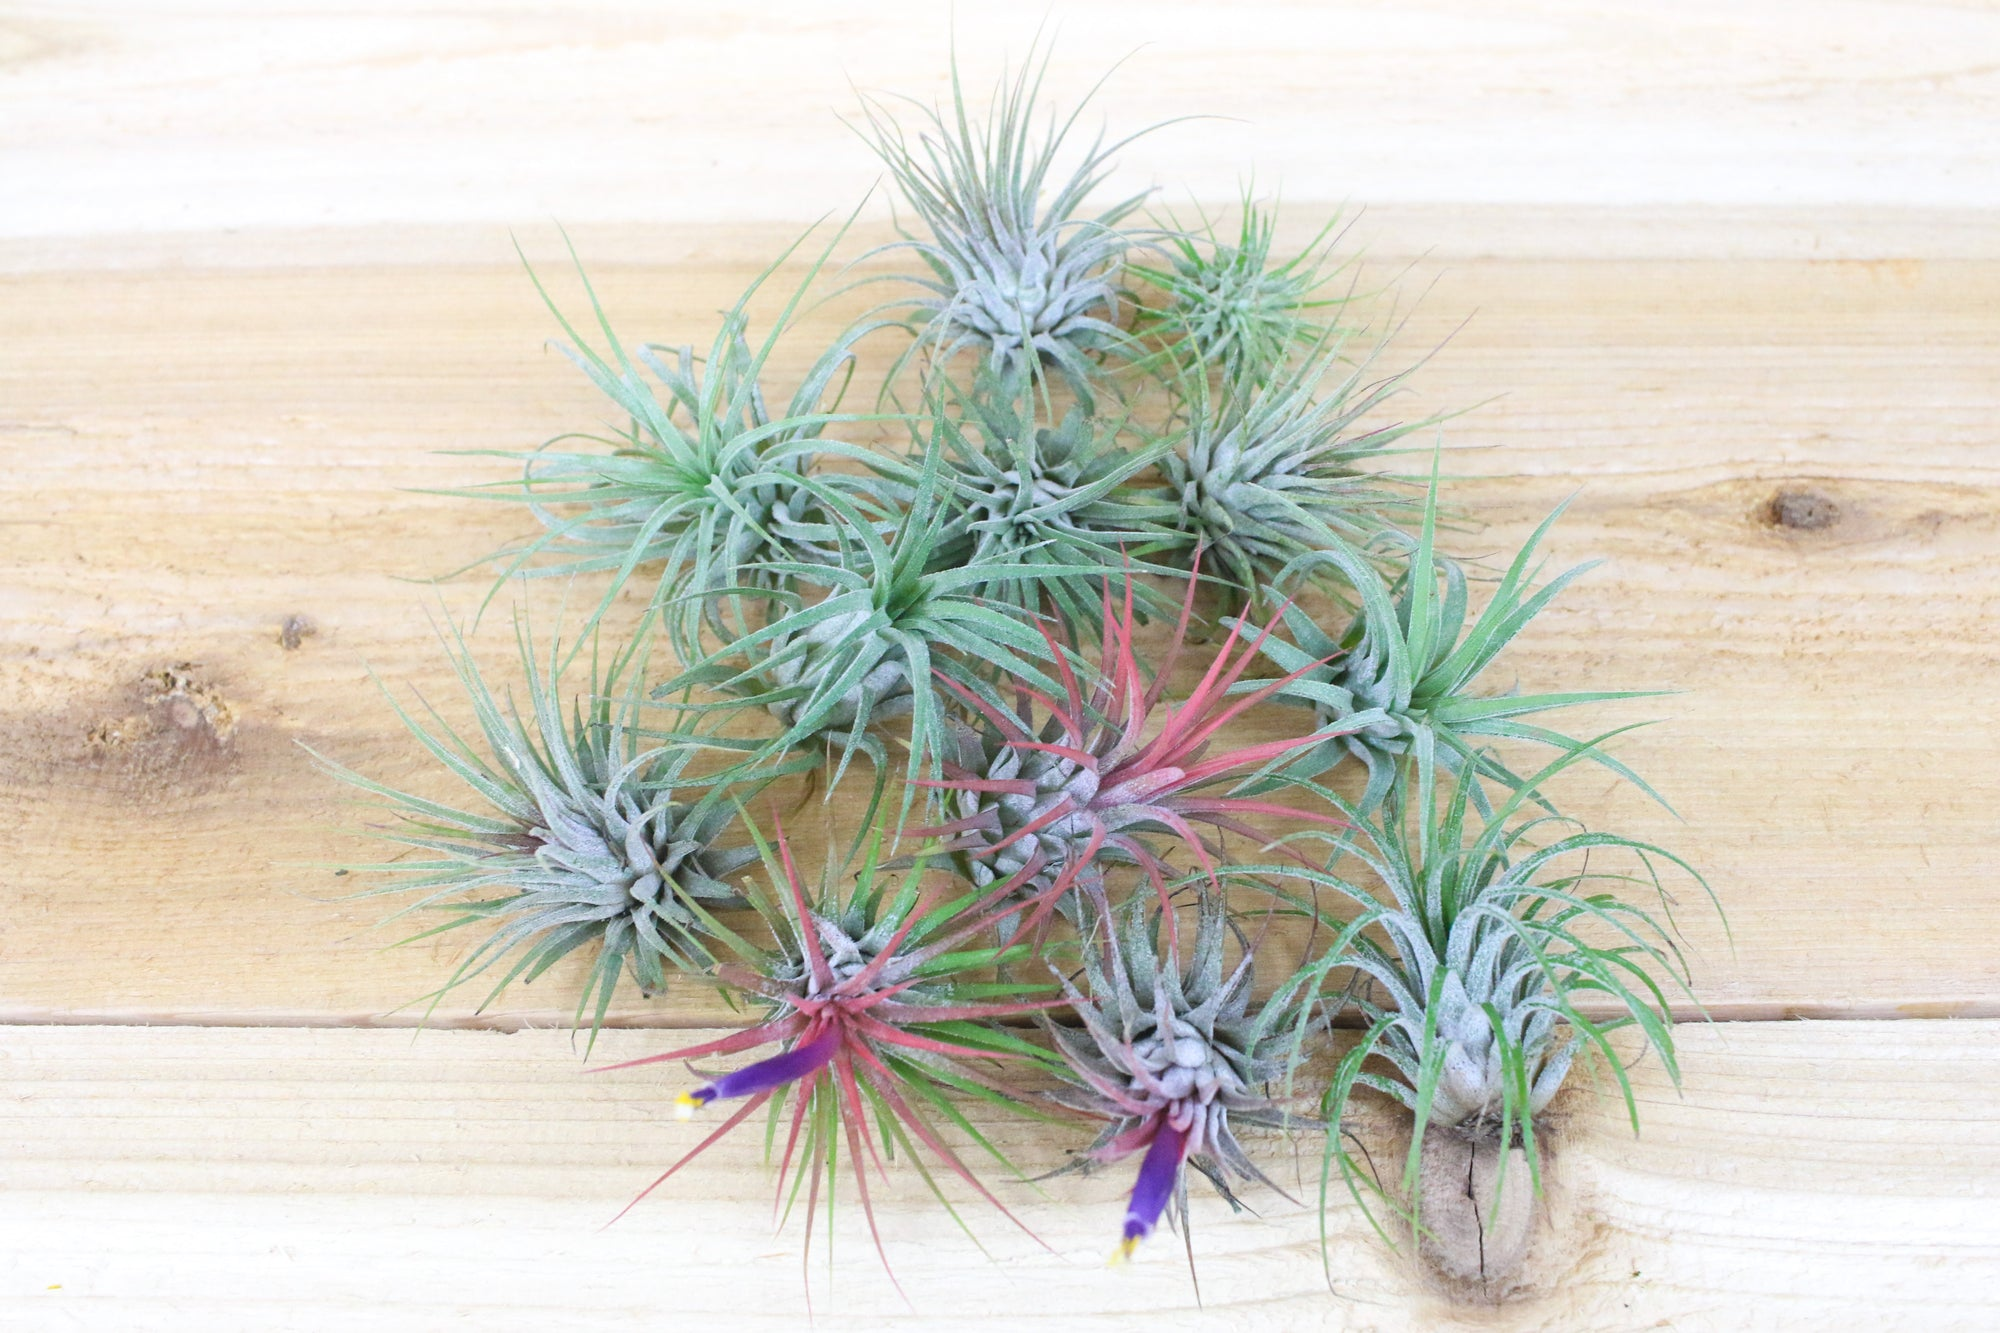 Sale: 55% Off [10, 20 or 30 Pack] Tiny Tilly Ionantha Collection from AirPlantShop.com